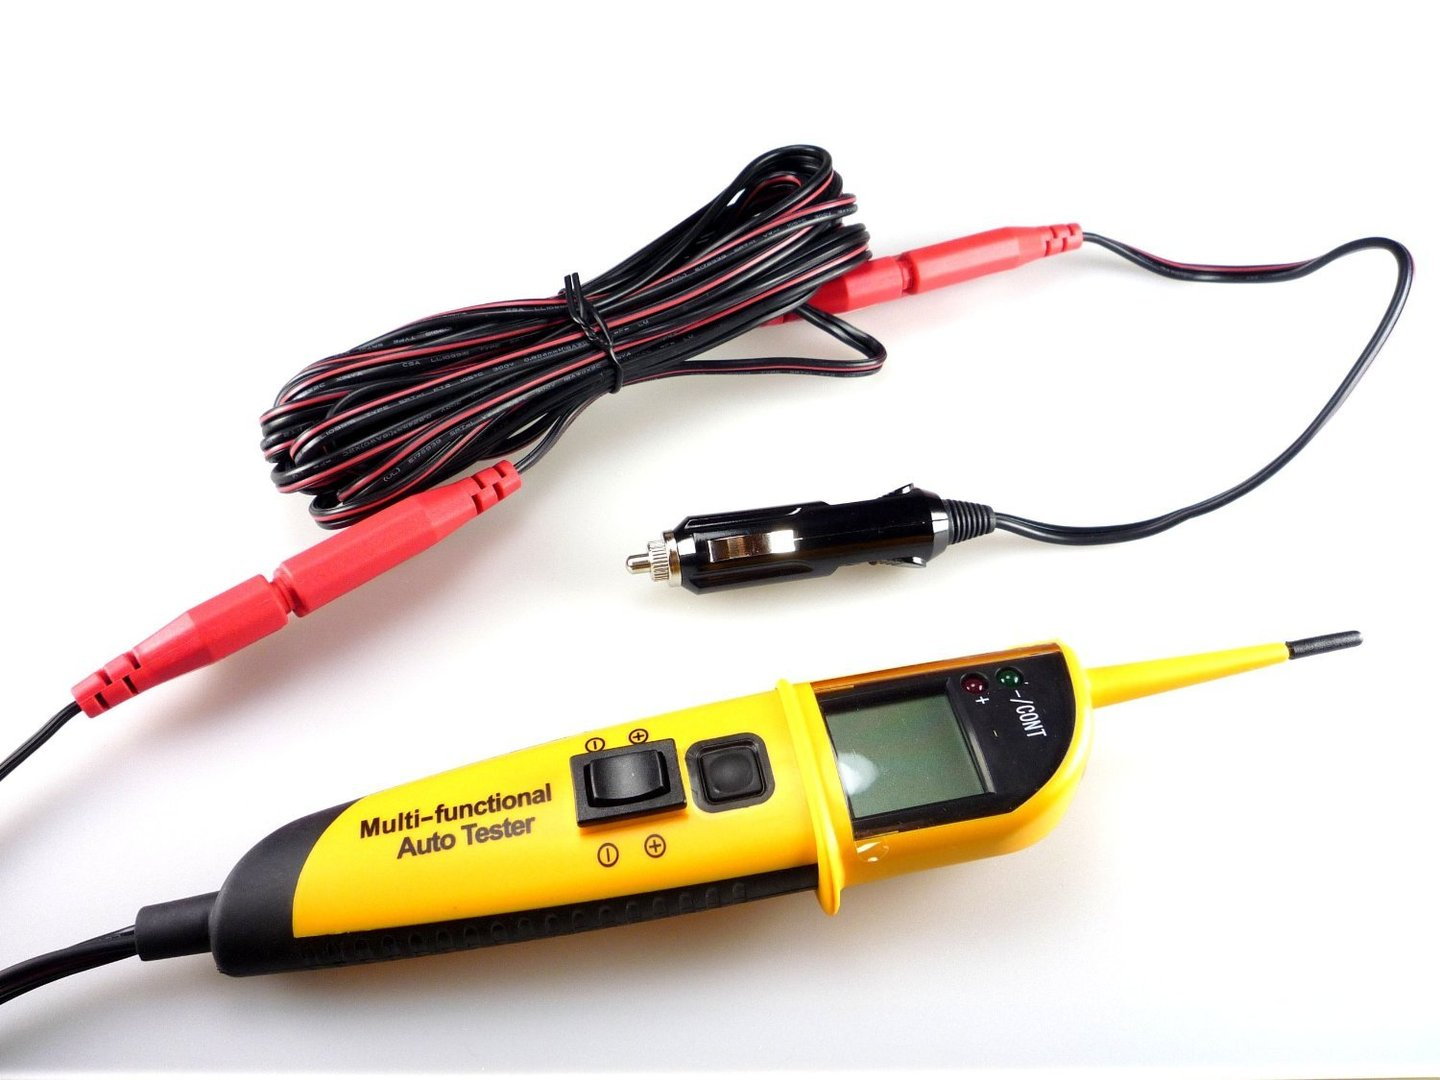 Kd Tools Circuit Testers : Wt multi functional auto circuit tester with lcd display